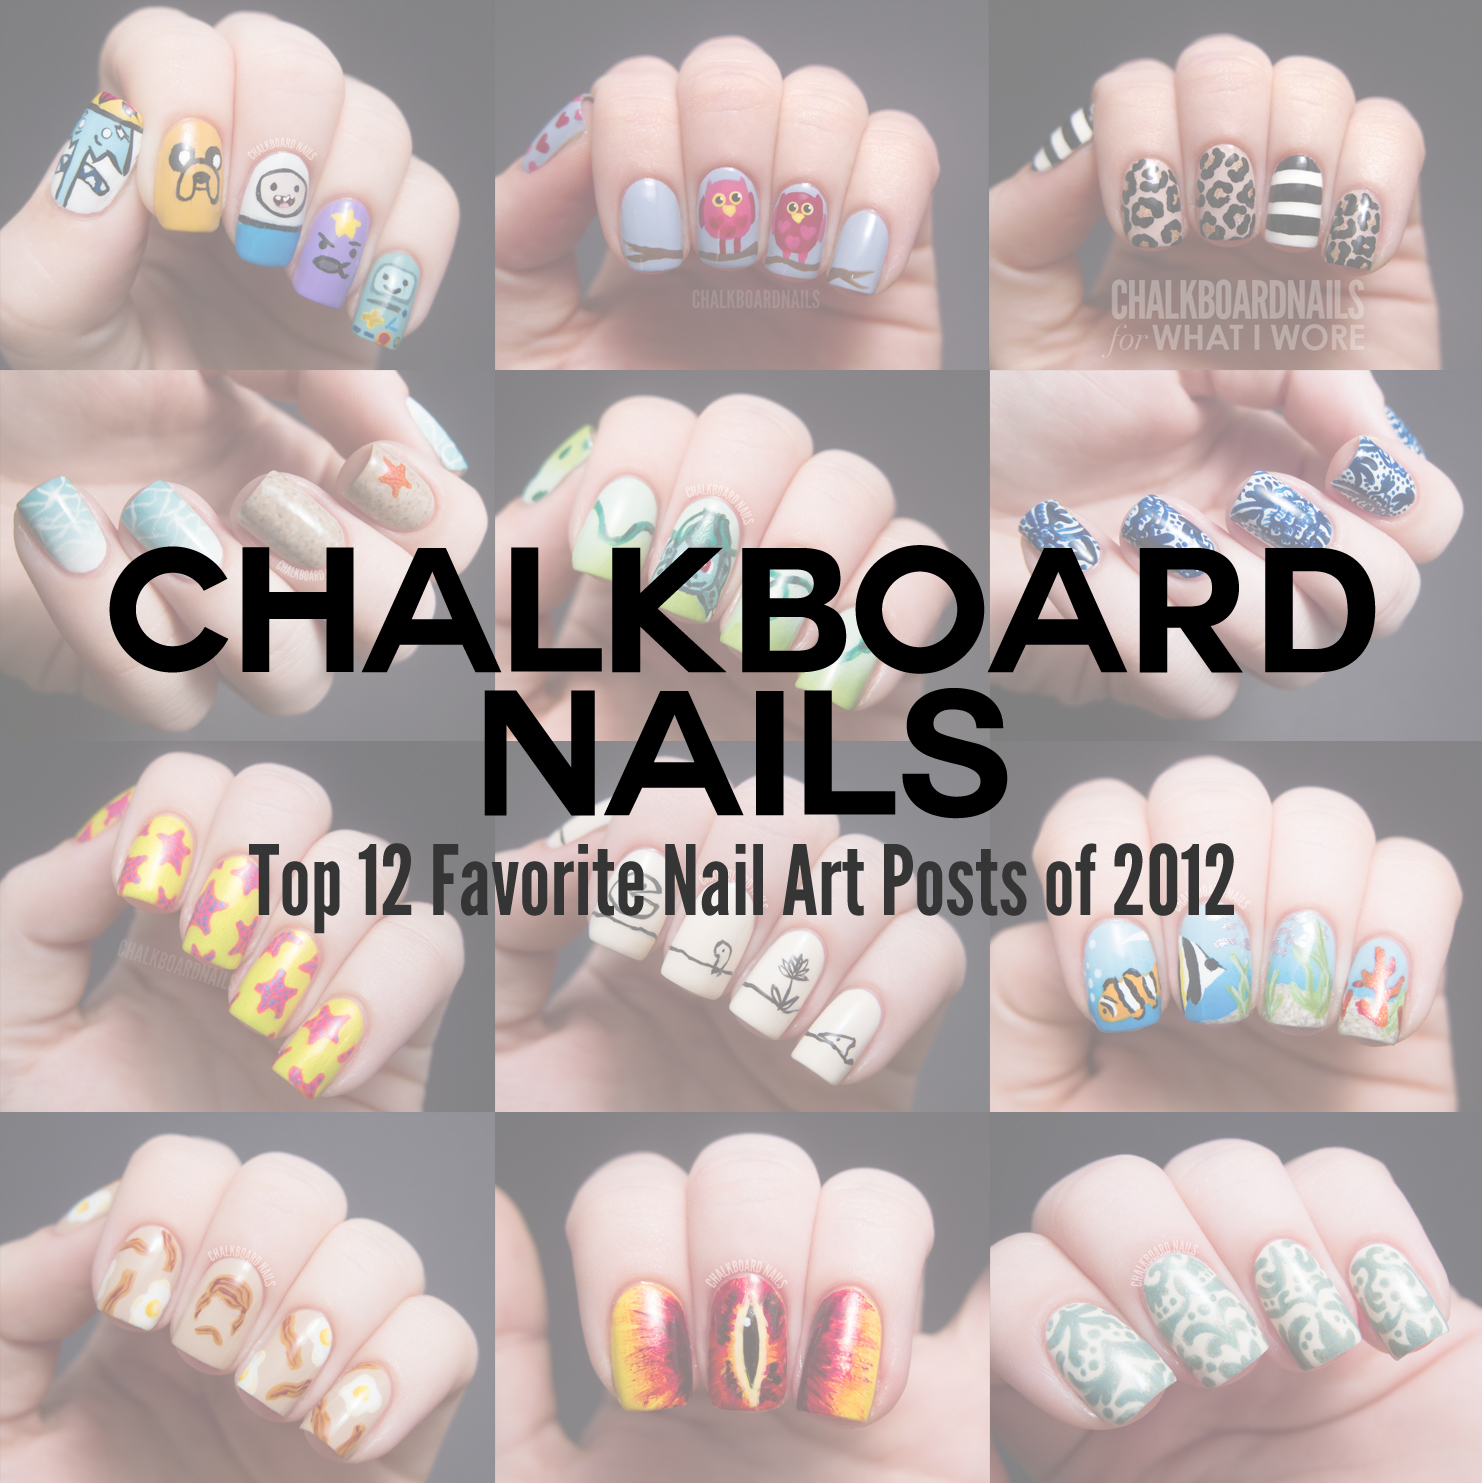 My Top 12 Favorite Nail Art Posts Of 2012 Chalkboard Nails Nail